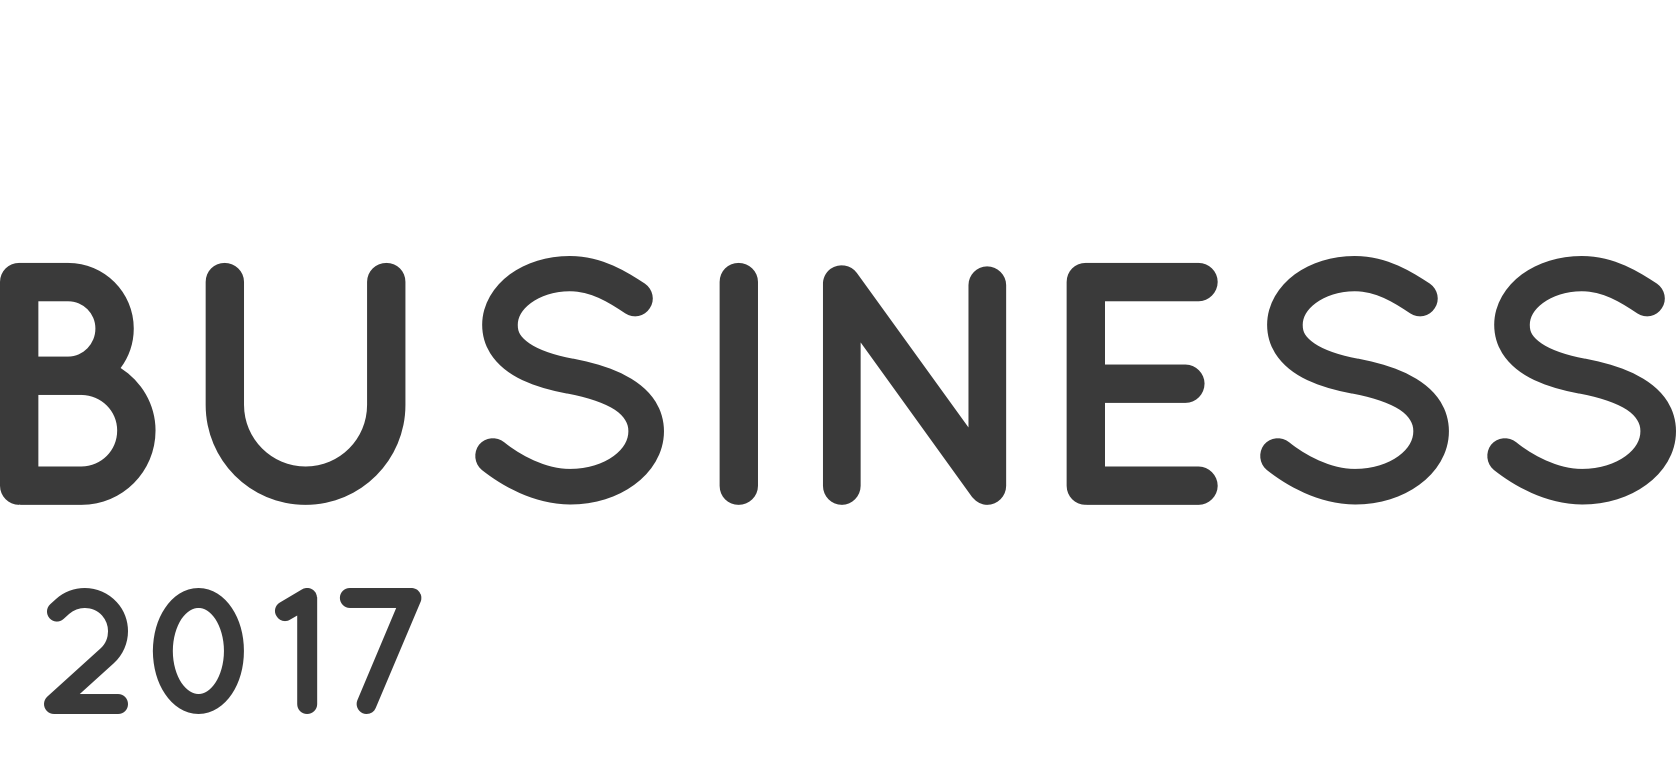 cognitive-business-summit